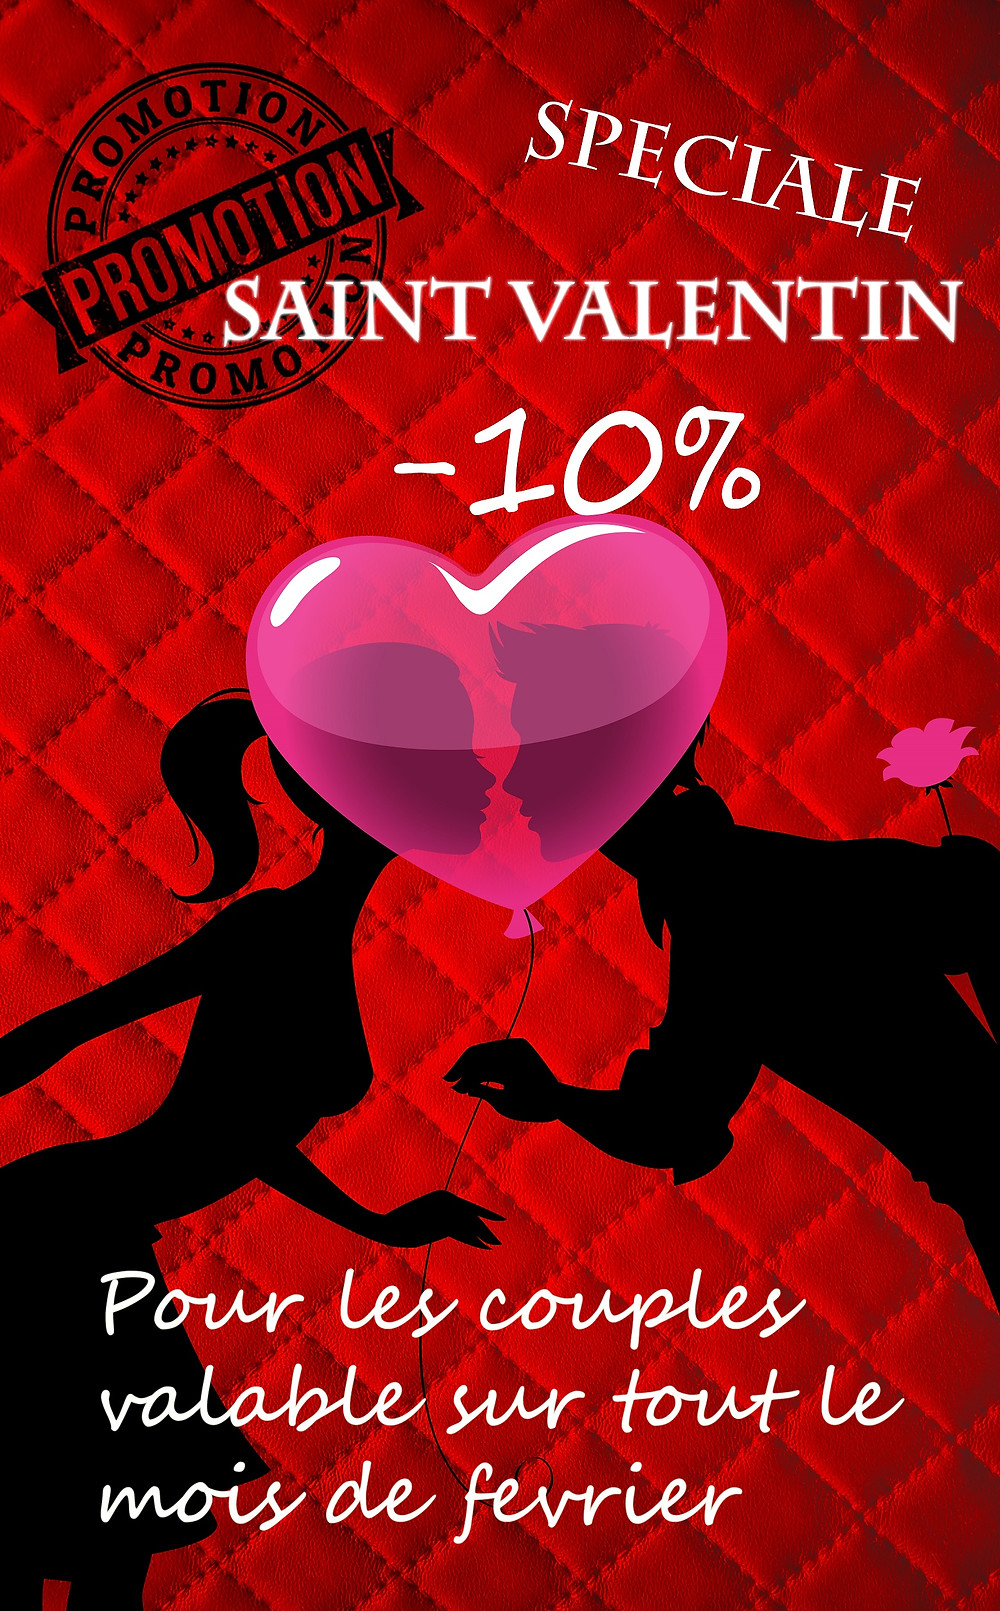 promotion - saint valentin - photo de couple - 95 - val d'oise